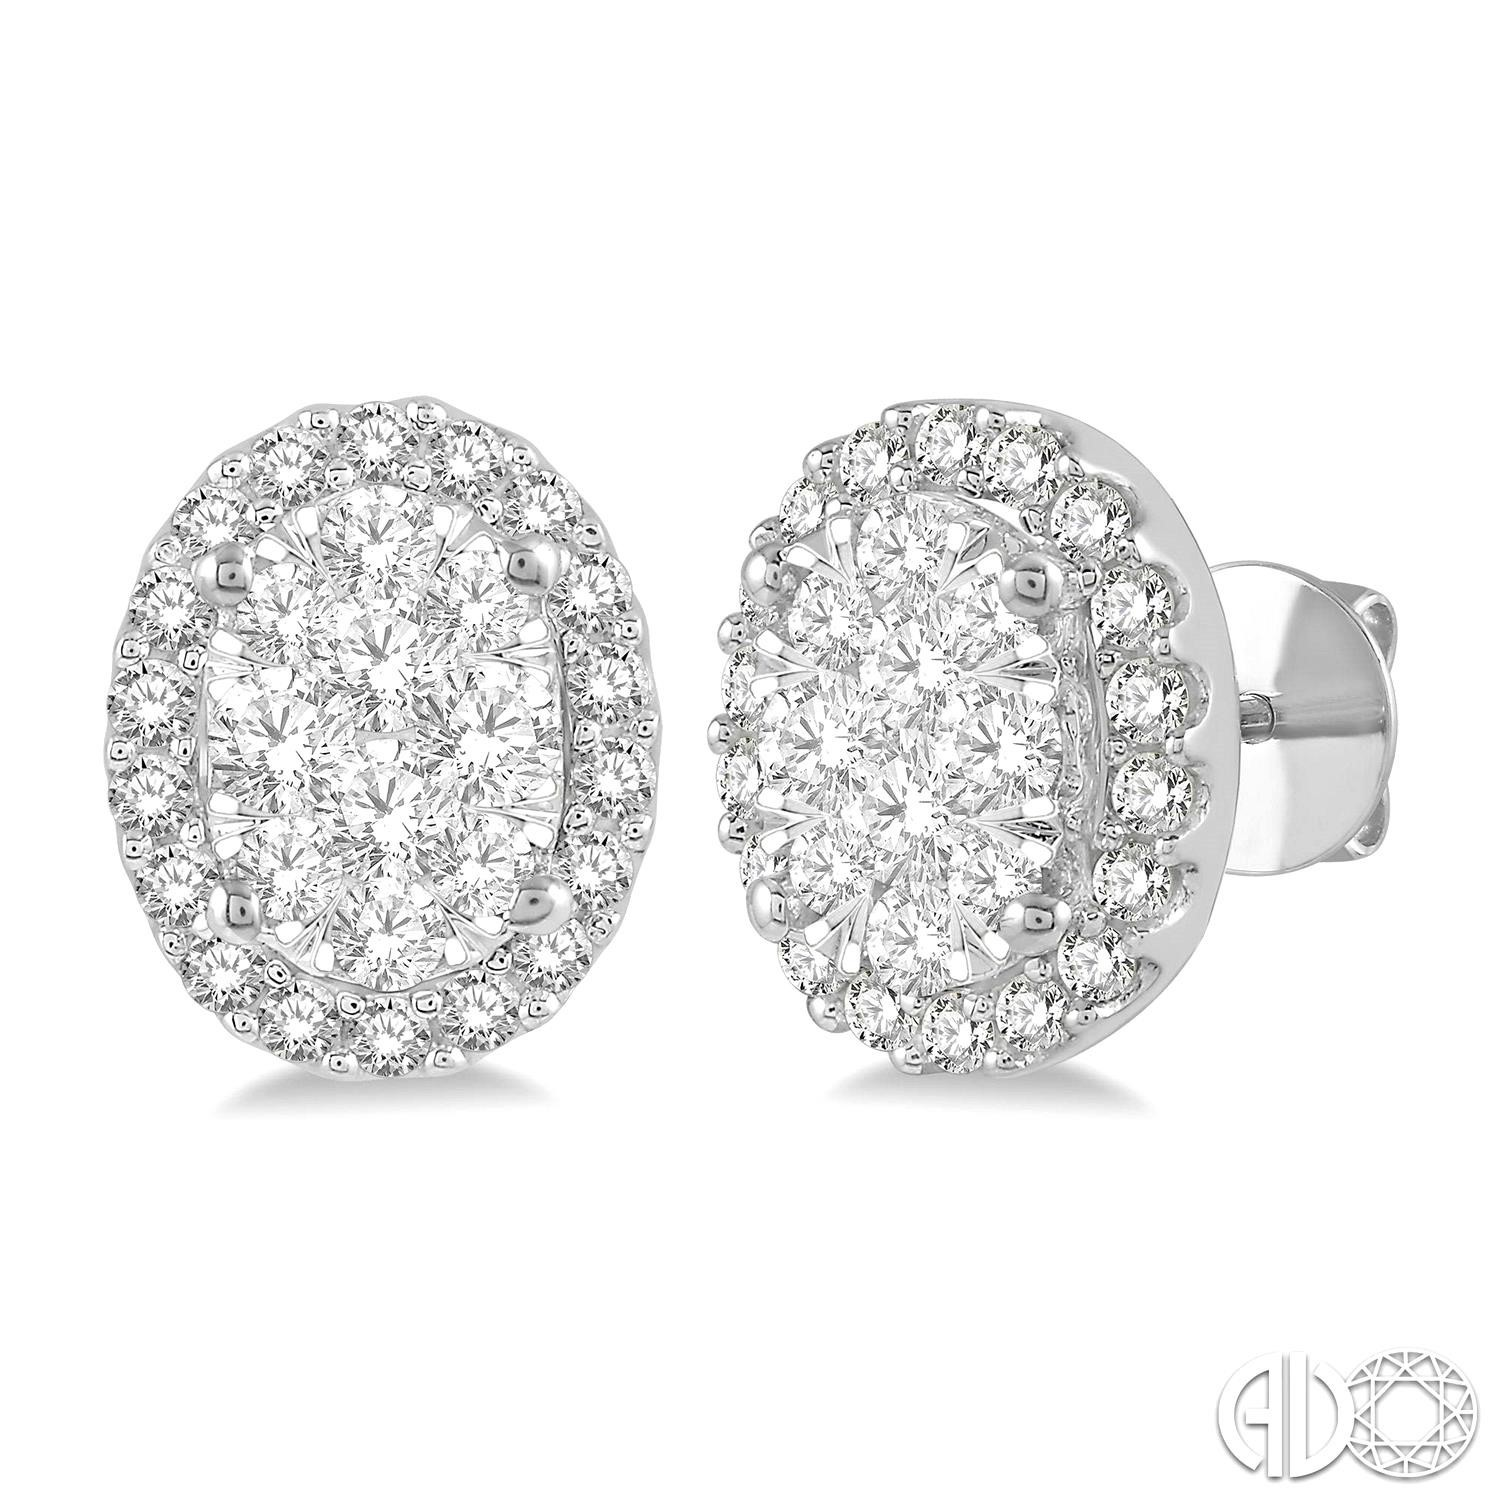 1/2 Ctw Oval Shape Lovebright Round Cut Diamond Stud Earrings in 14K White Gold